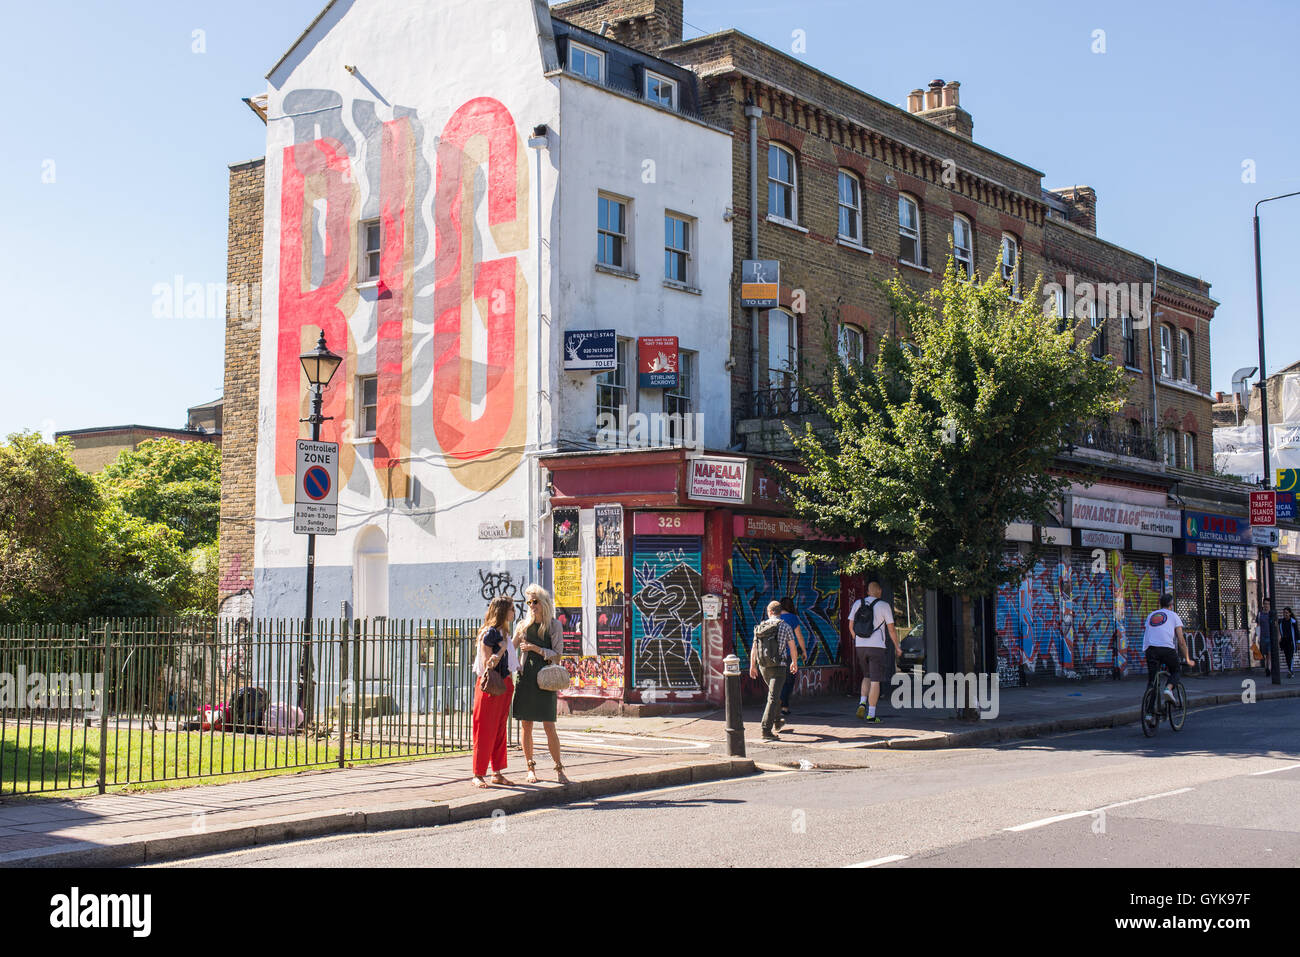 People walking on Hackney road in Bethnal Green, East London, on a sunny day. - Stock Image